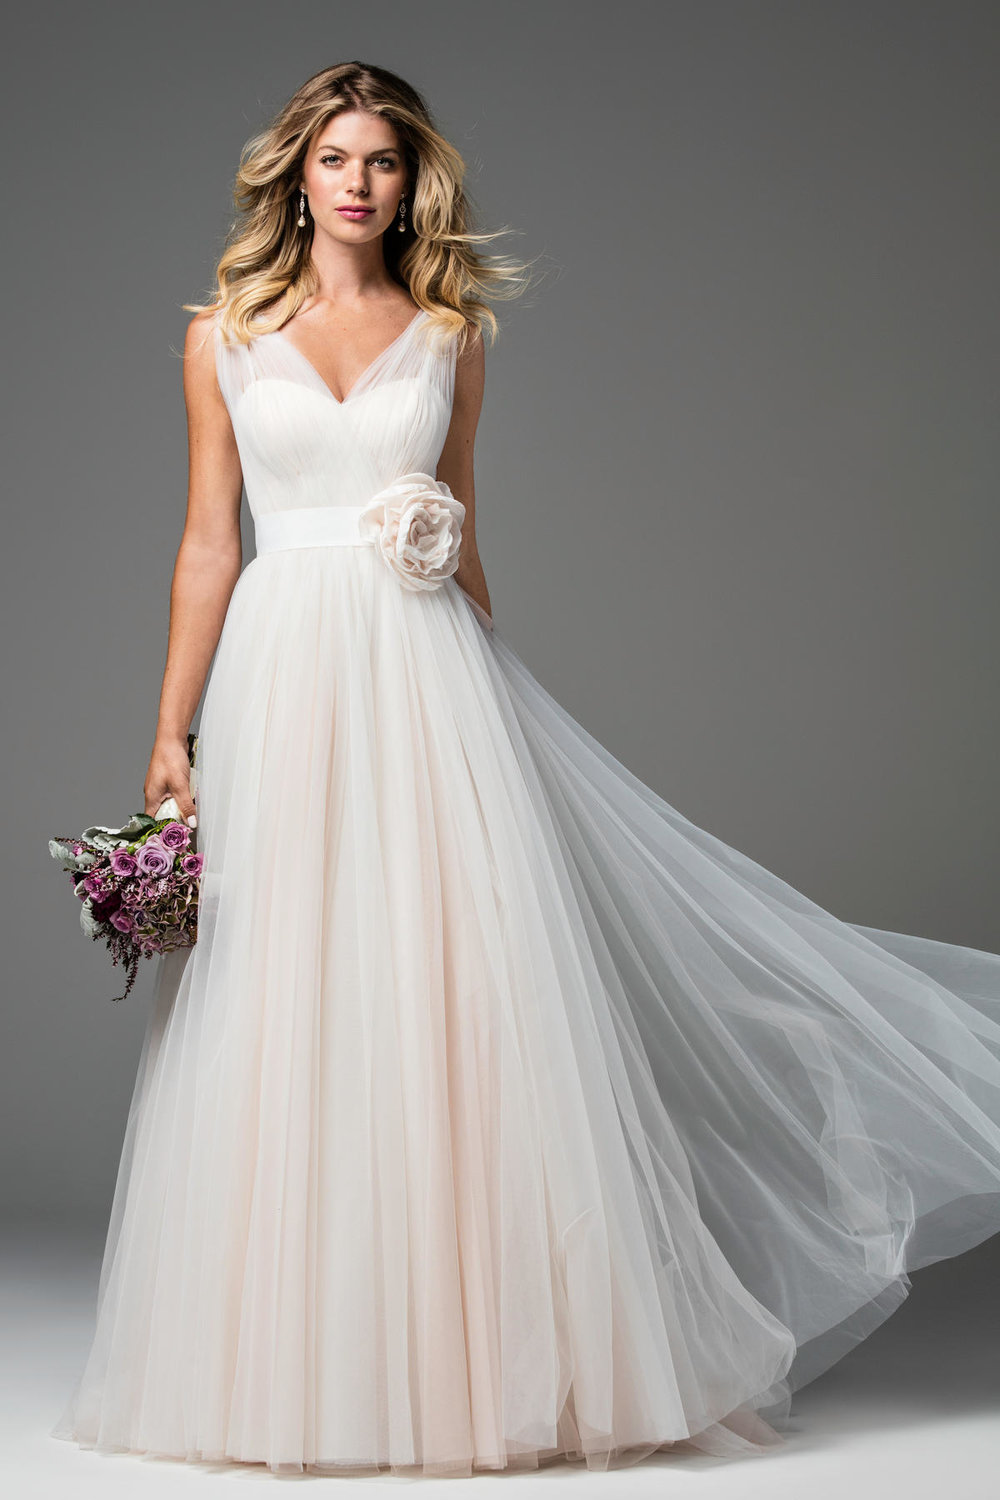 Agnessa -  Feminine and classic, Agnessa is the ultimate wedding dress. With cascading tulle cinched at the waist with our slimming Blythe Sash, this gown is perfect for the bride who loves romance. Chapel train.     Colors Available - Ivory, Amaranth